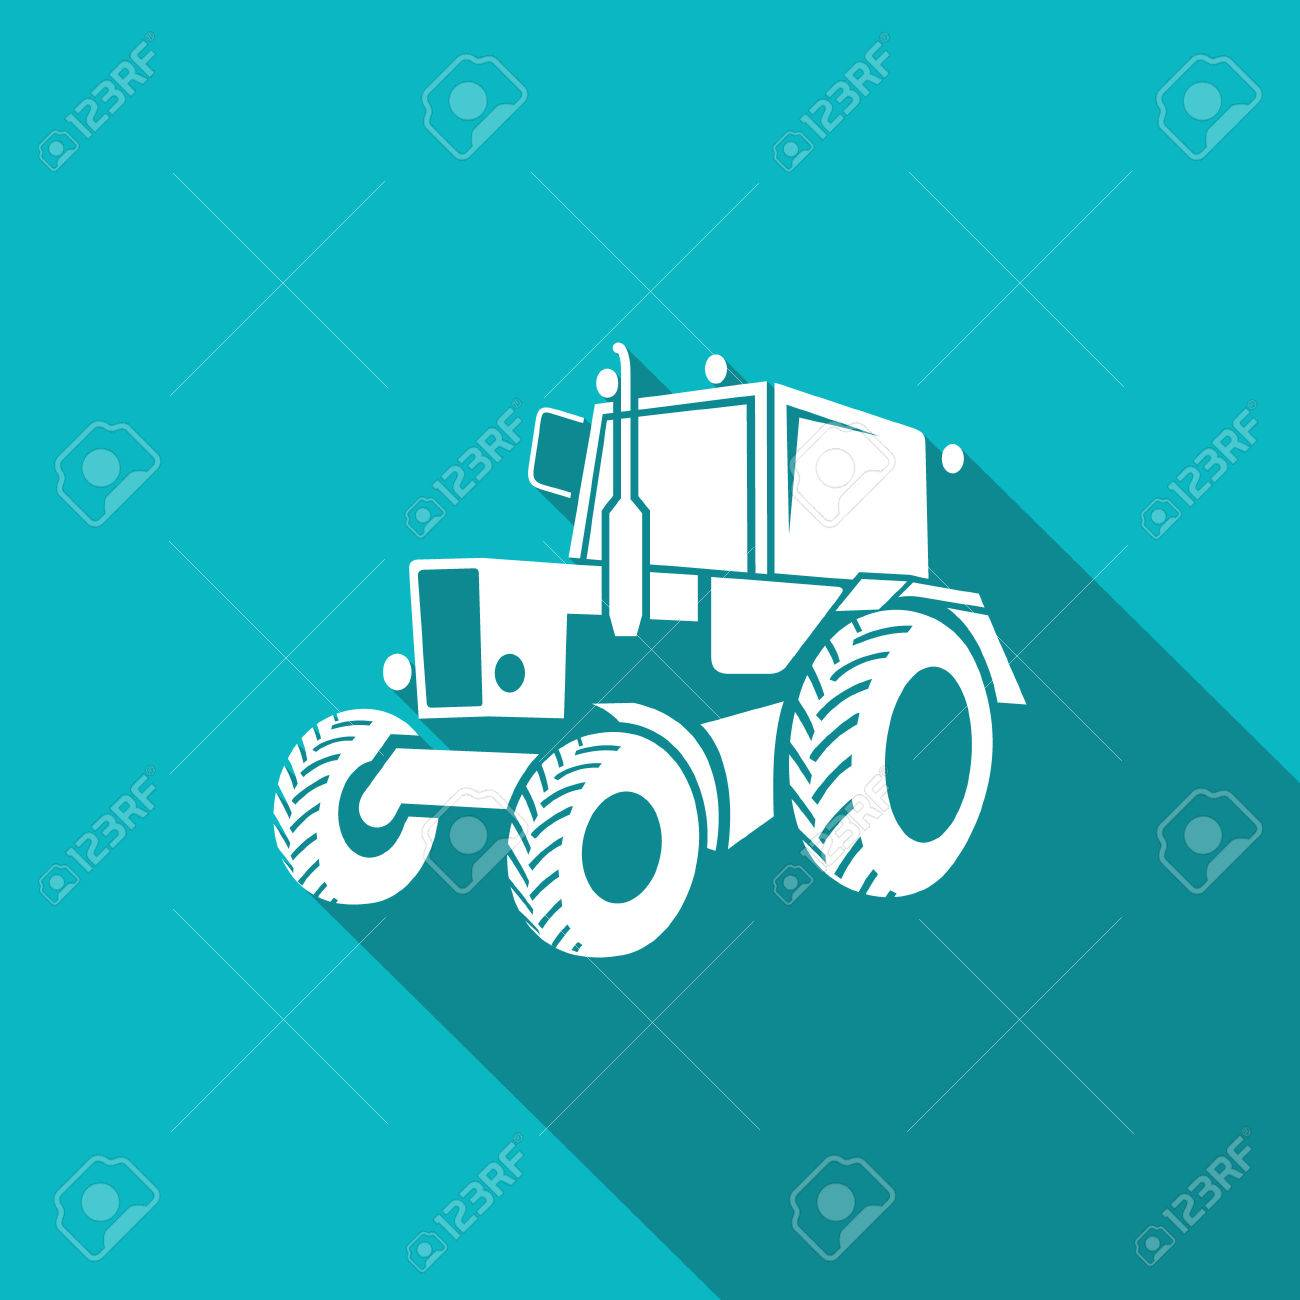 Vector Isolated Flat Icon on a blue background for design - 44246330